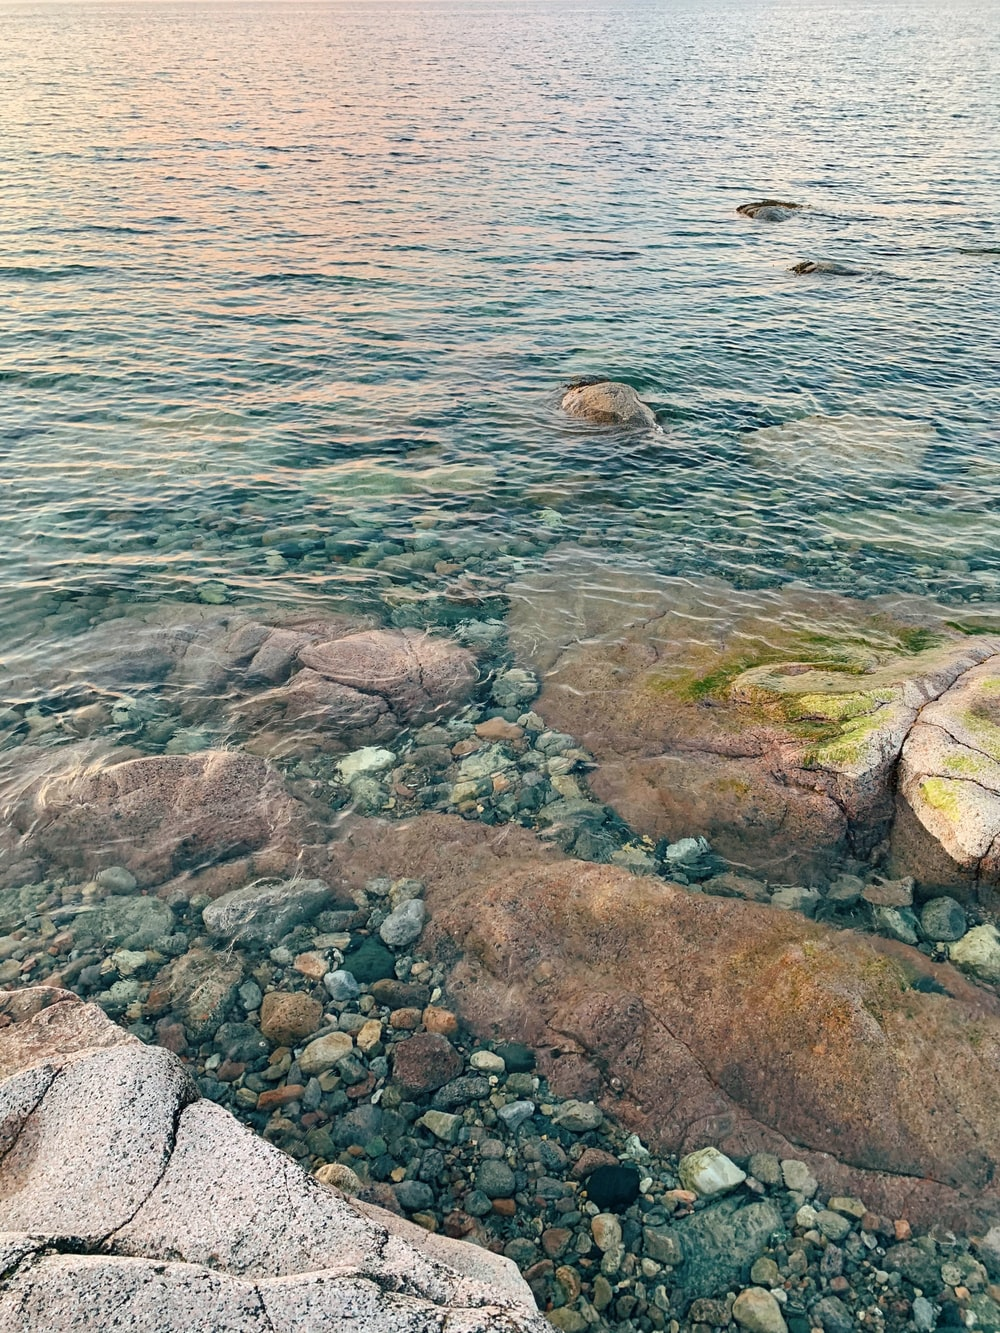 gray and brown rocks on body of water during daytime